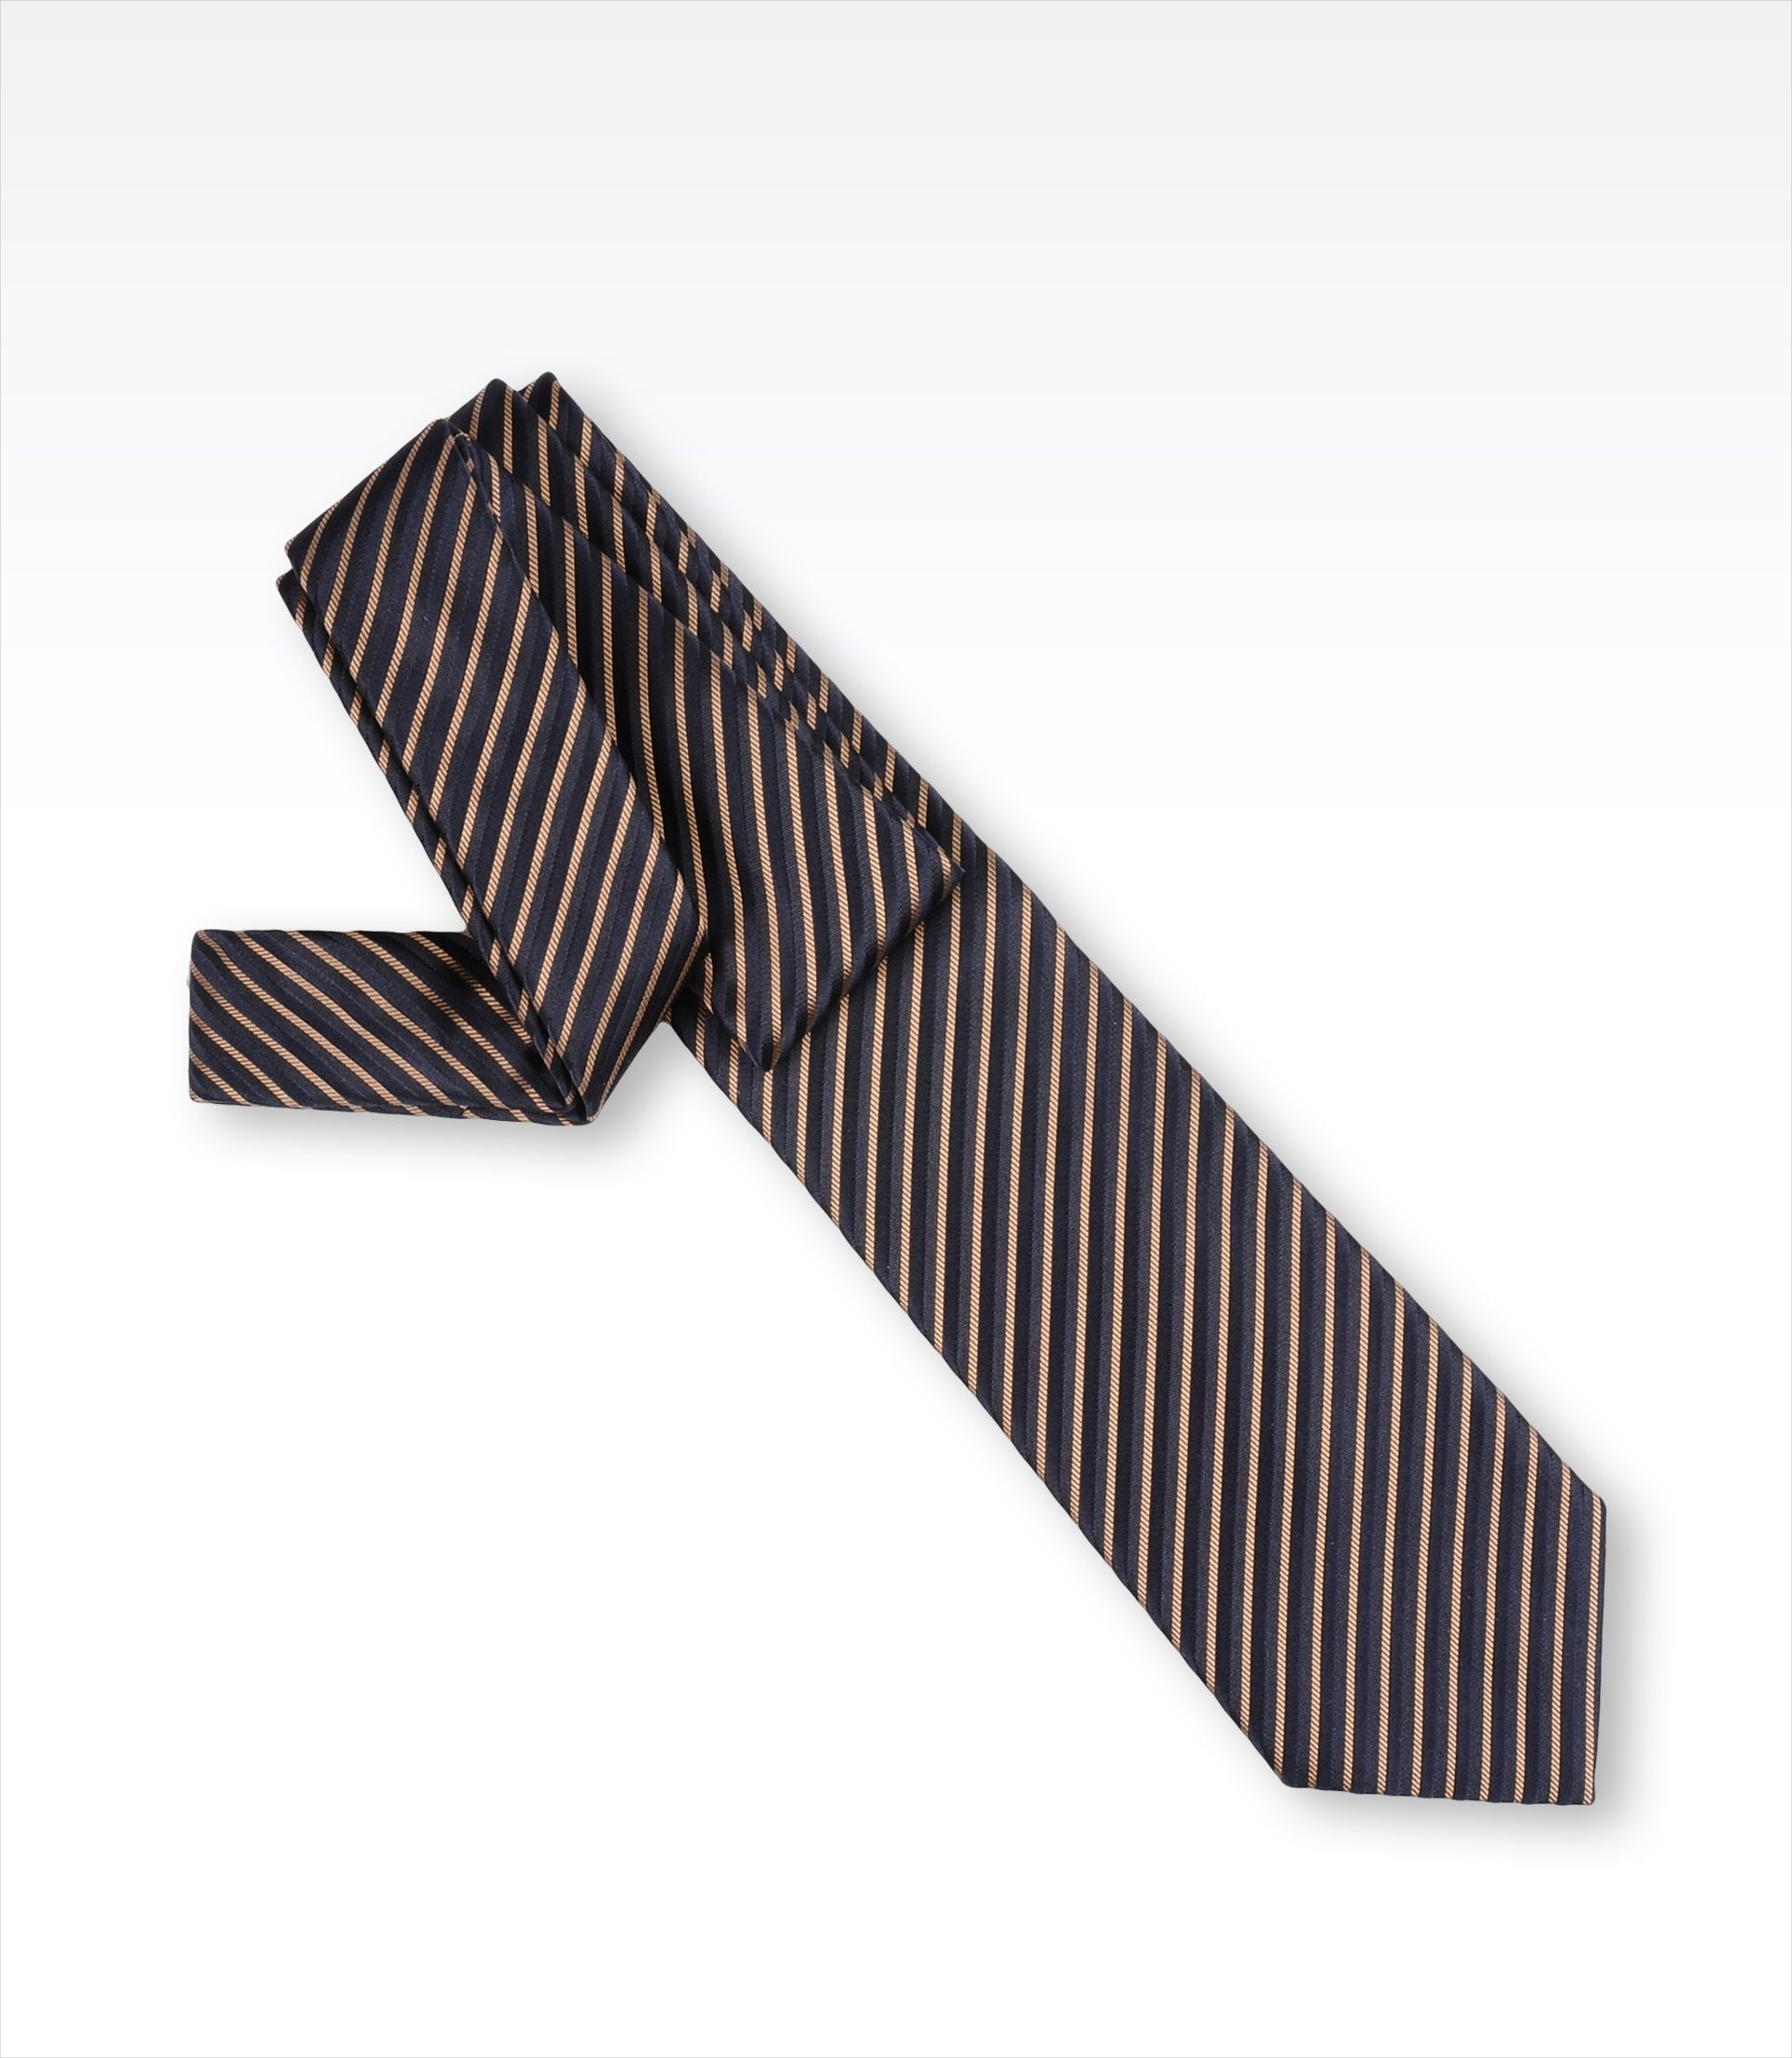 simple striped tie design for men